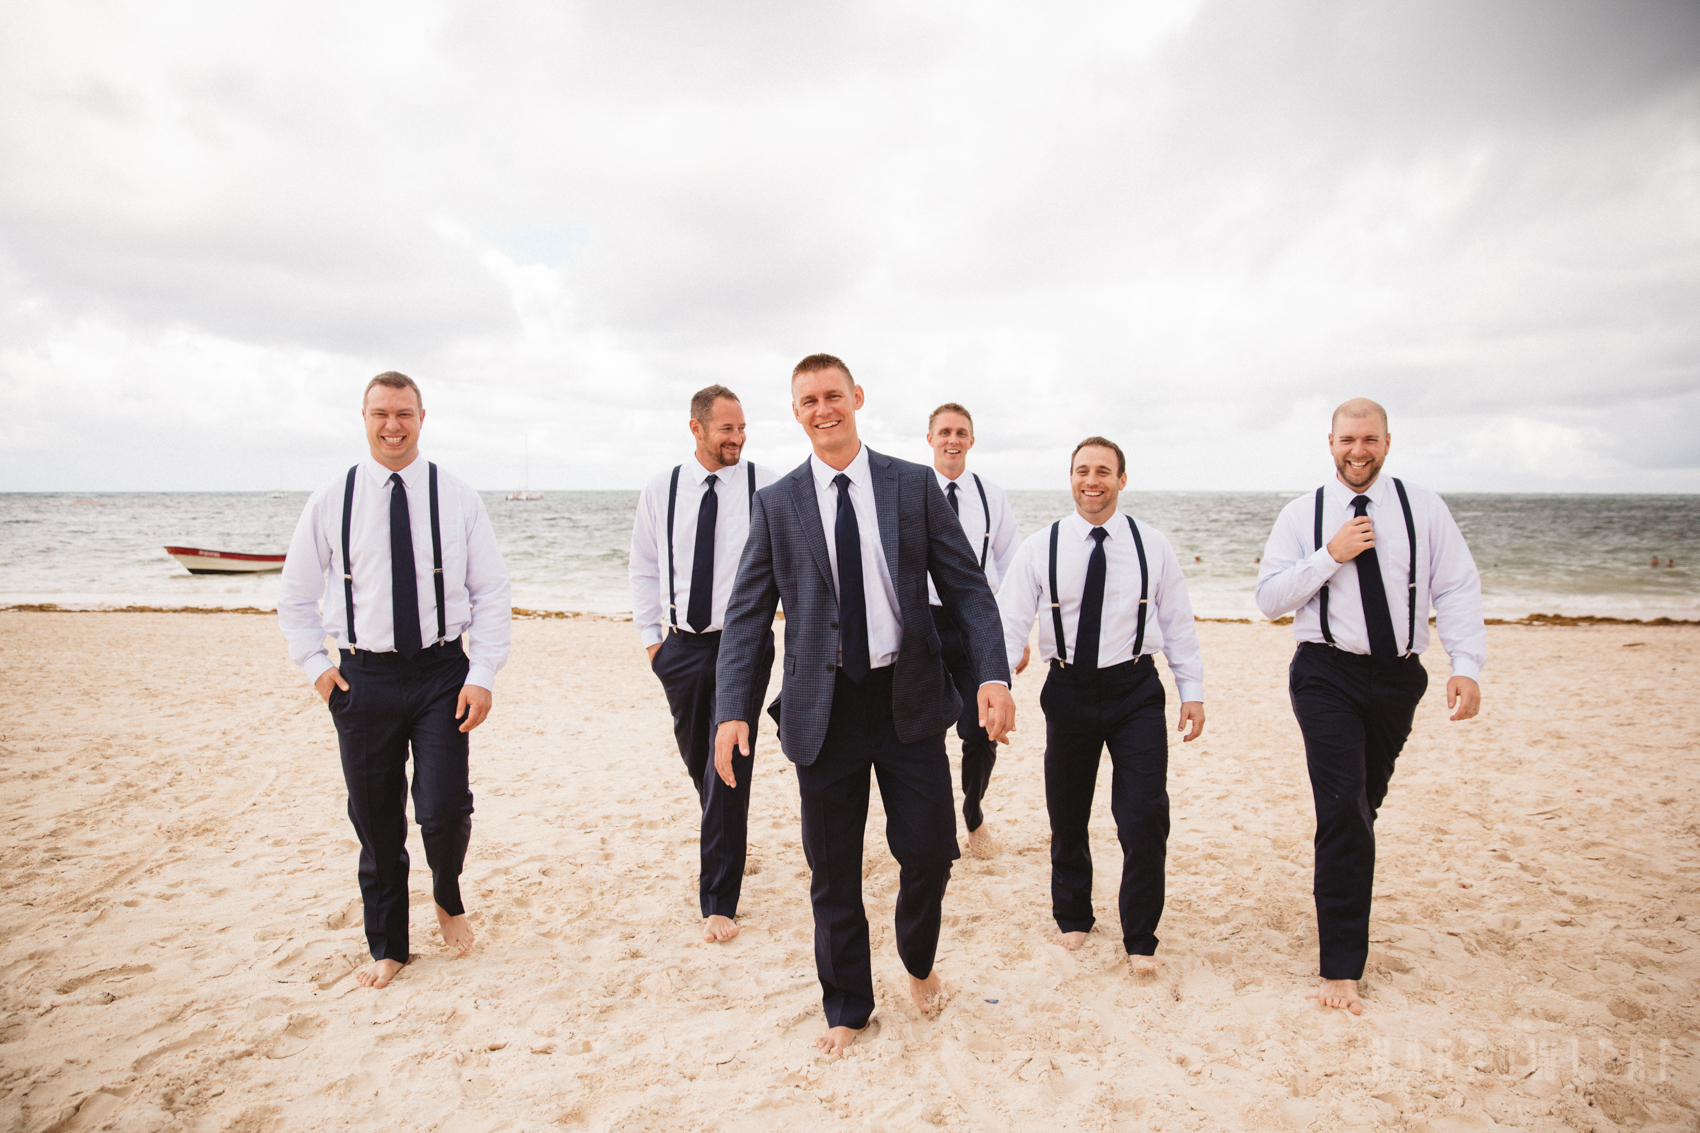 punta-cana-dominican-republic-destination-wedding-beach-groomsmen-6299.jpg